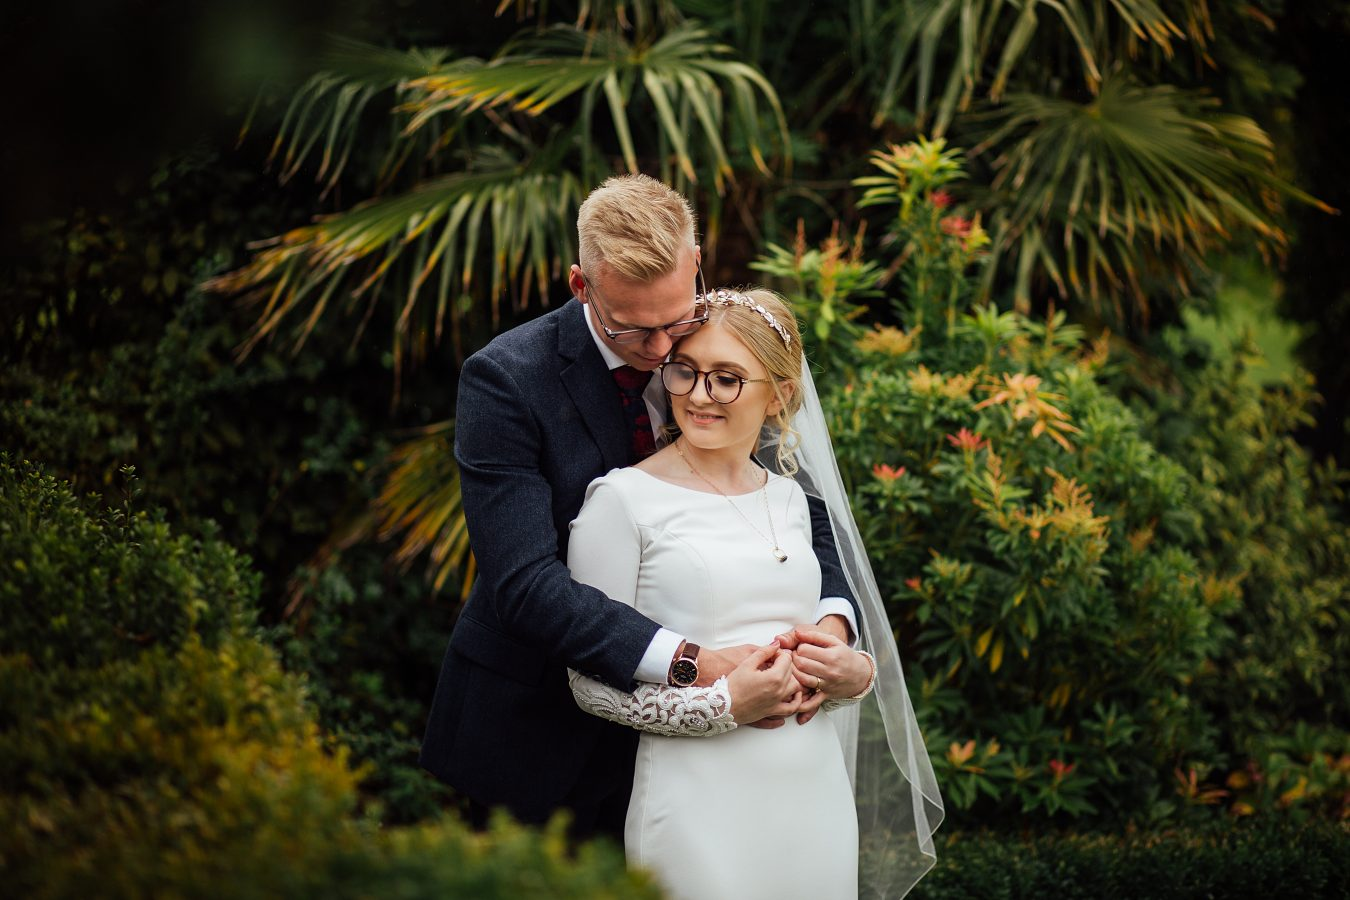 Pryors-Hayes-Weddings-Chester-Steph-Michael-Jules-Barron-2018-583